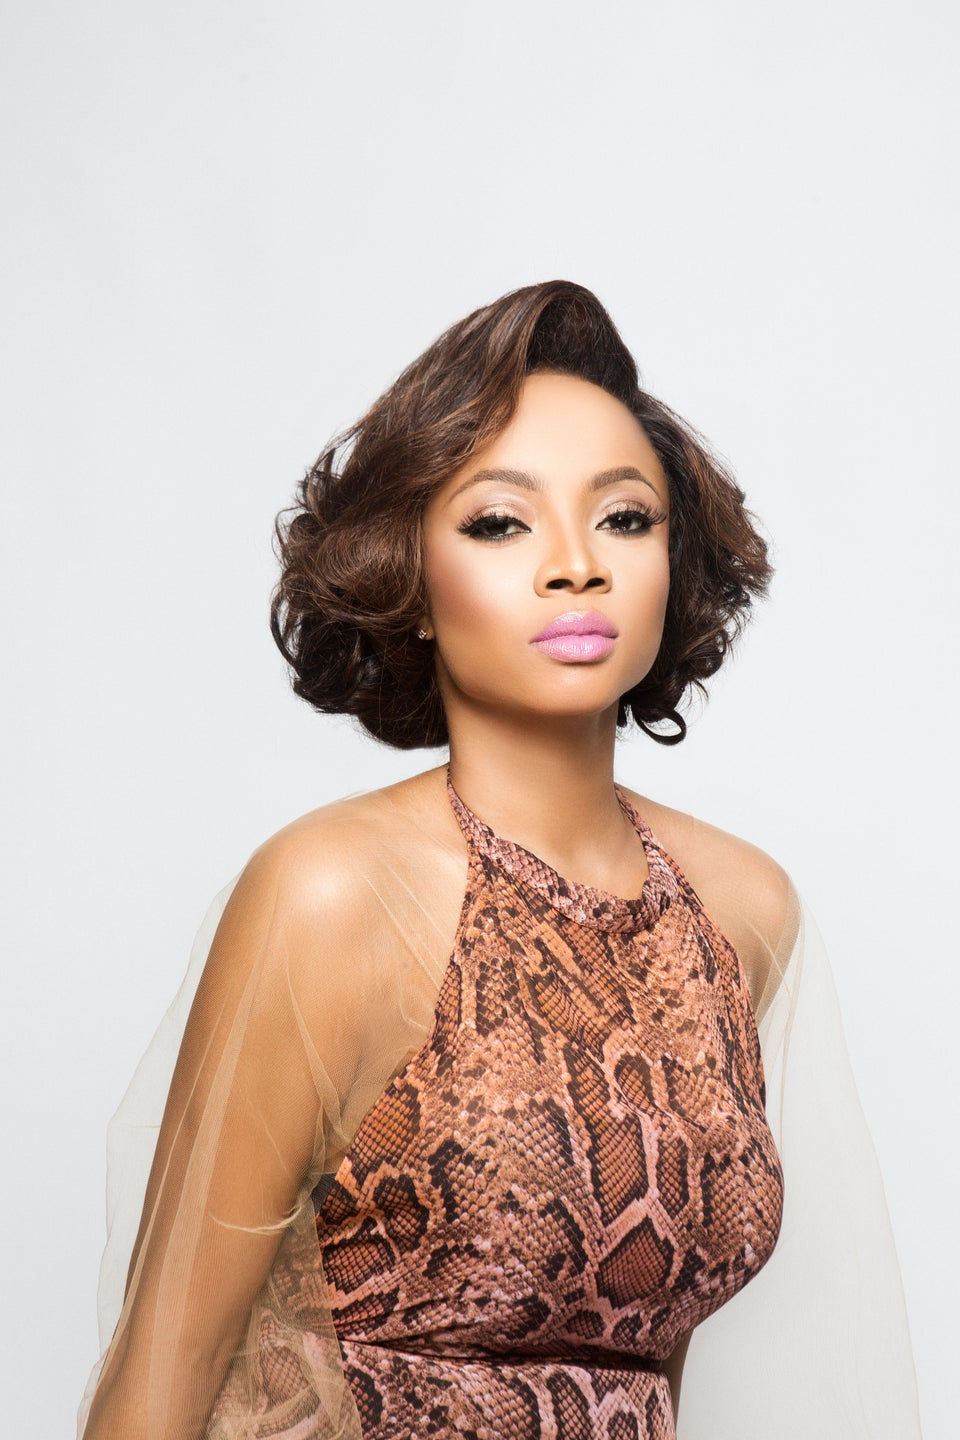 Nigerian It Girl Toke Makinwa Dishes On Disastrous Marriage And Nasty Divorce In New Tell-All